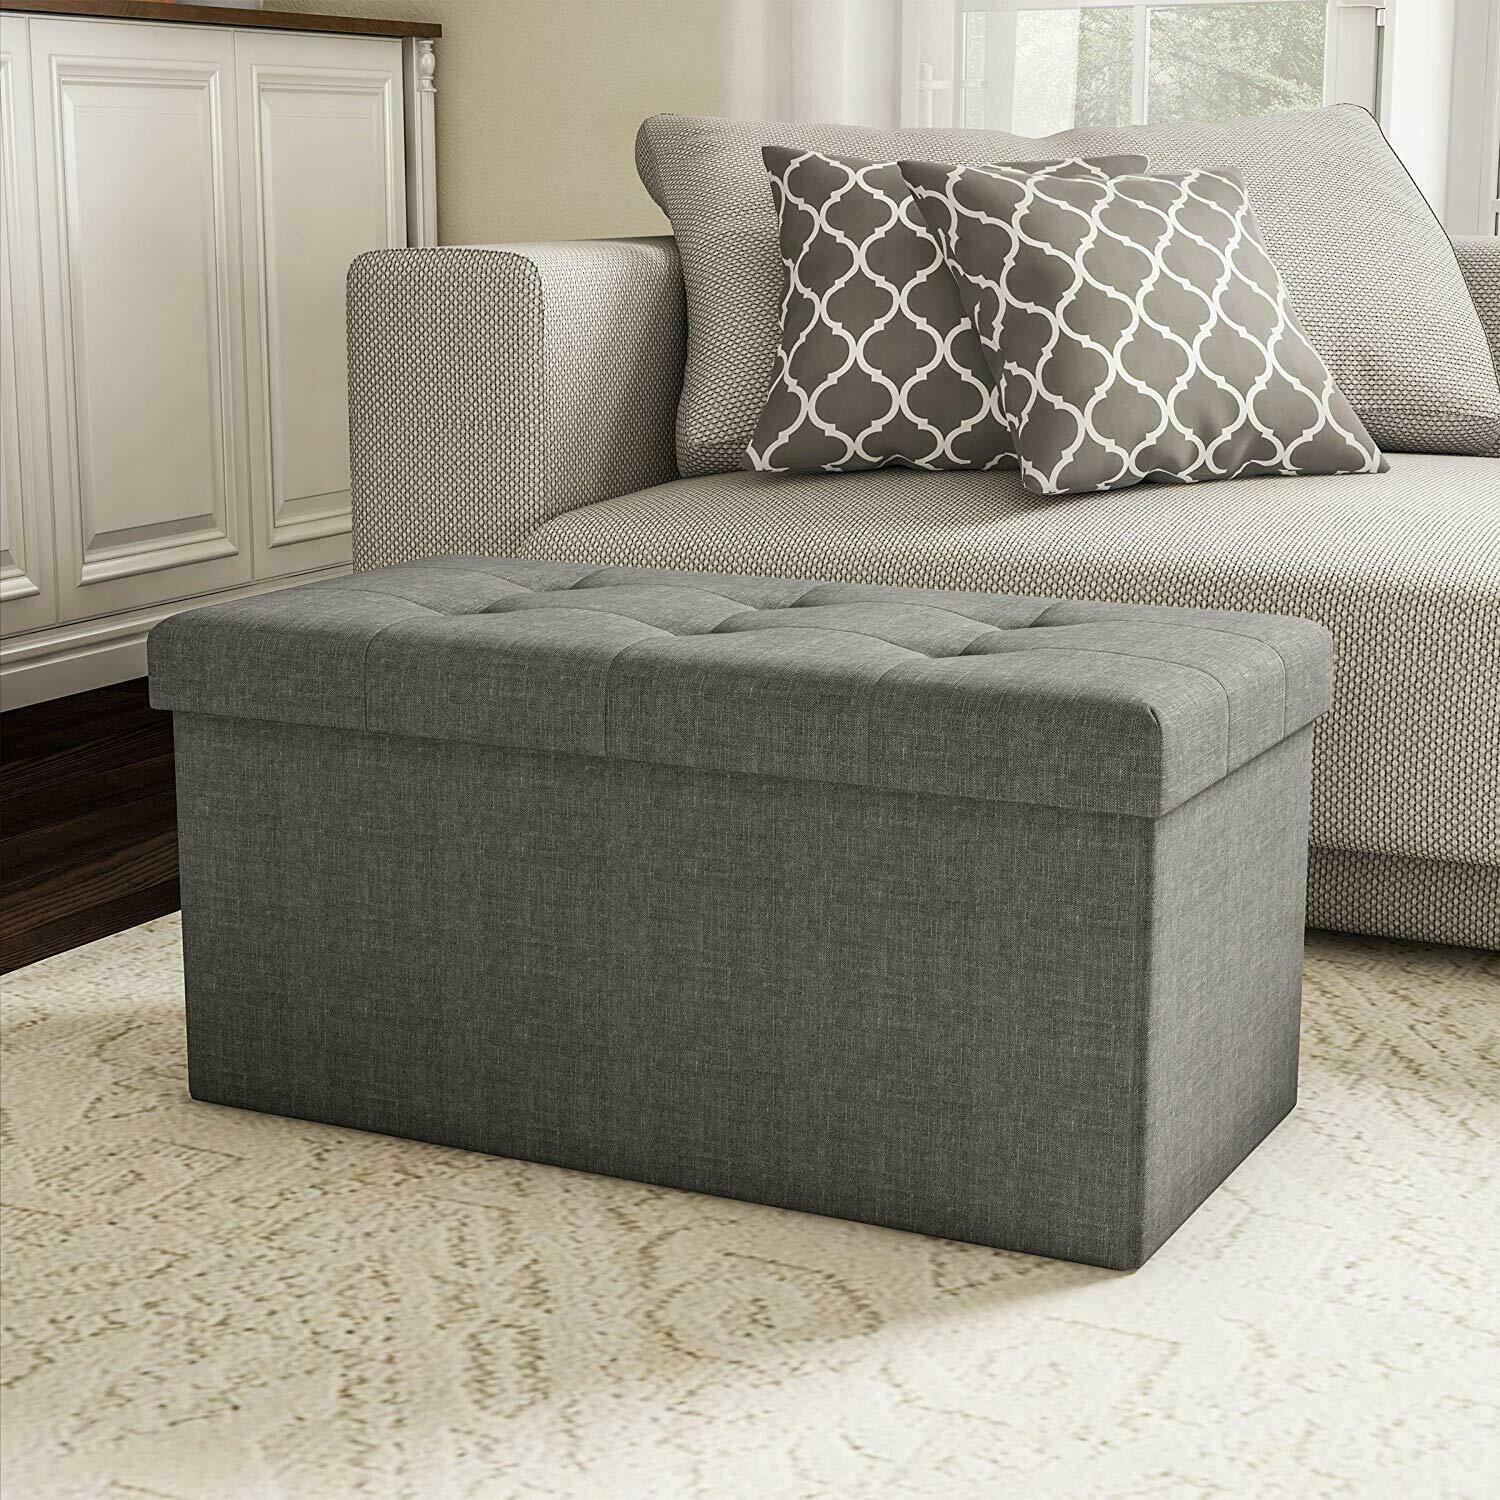 Bed Storage Bench Foldable Collapsible